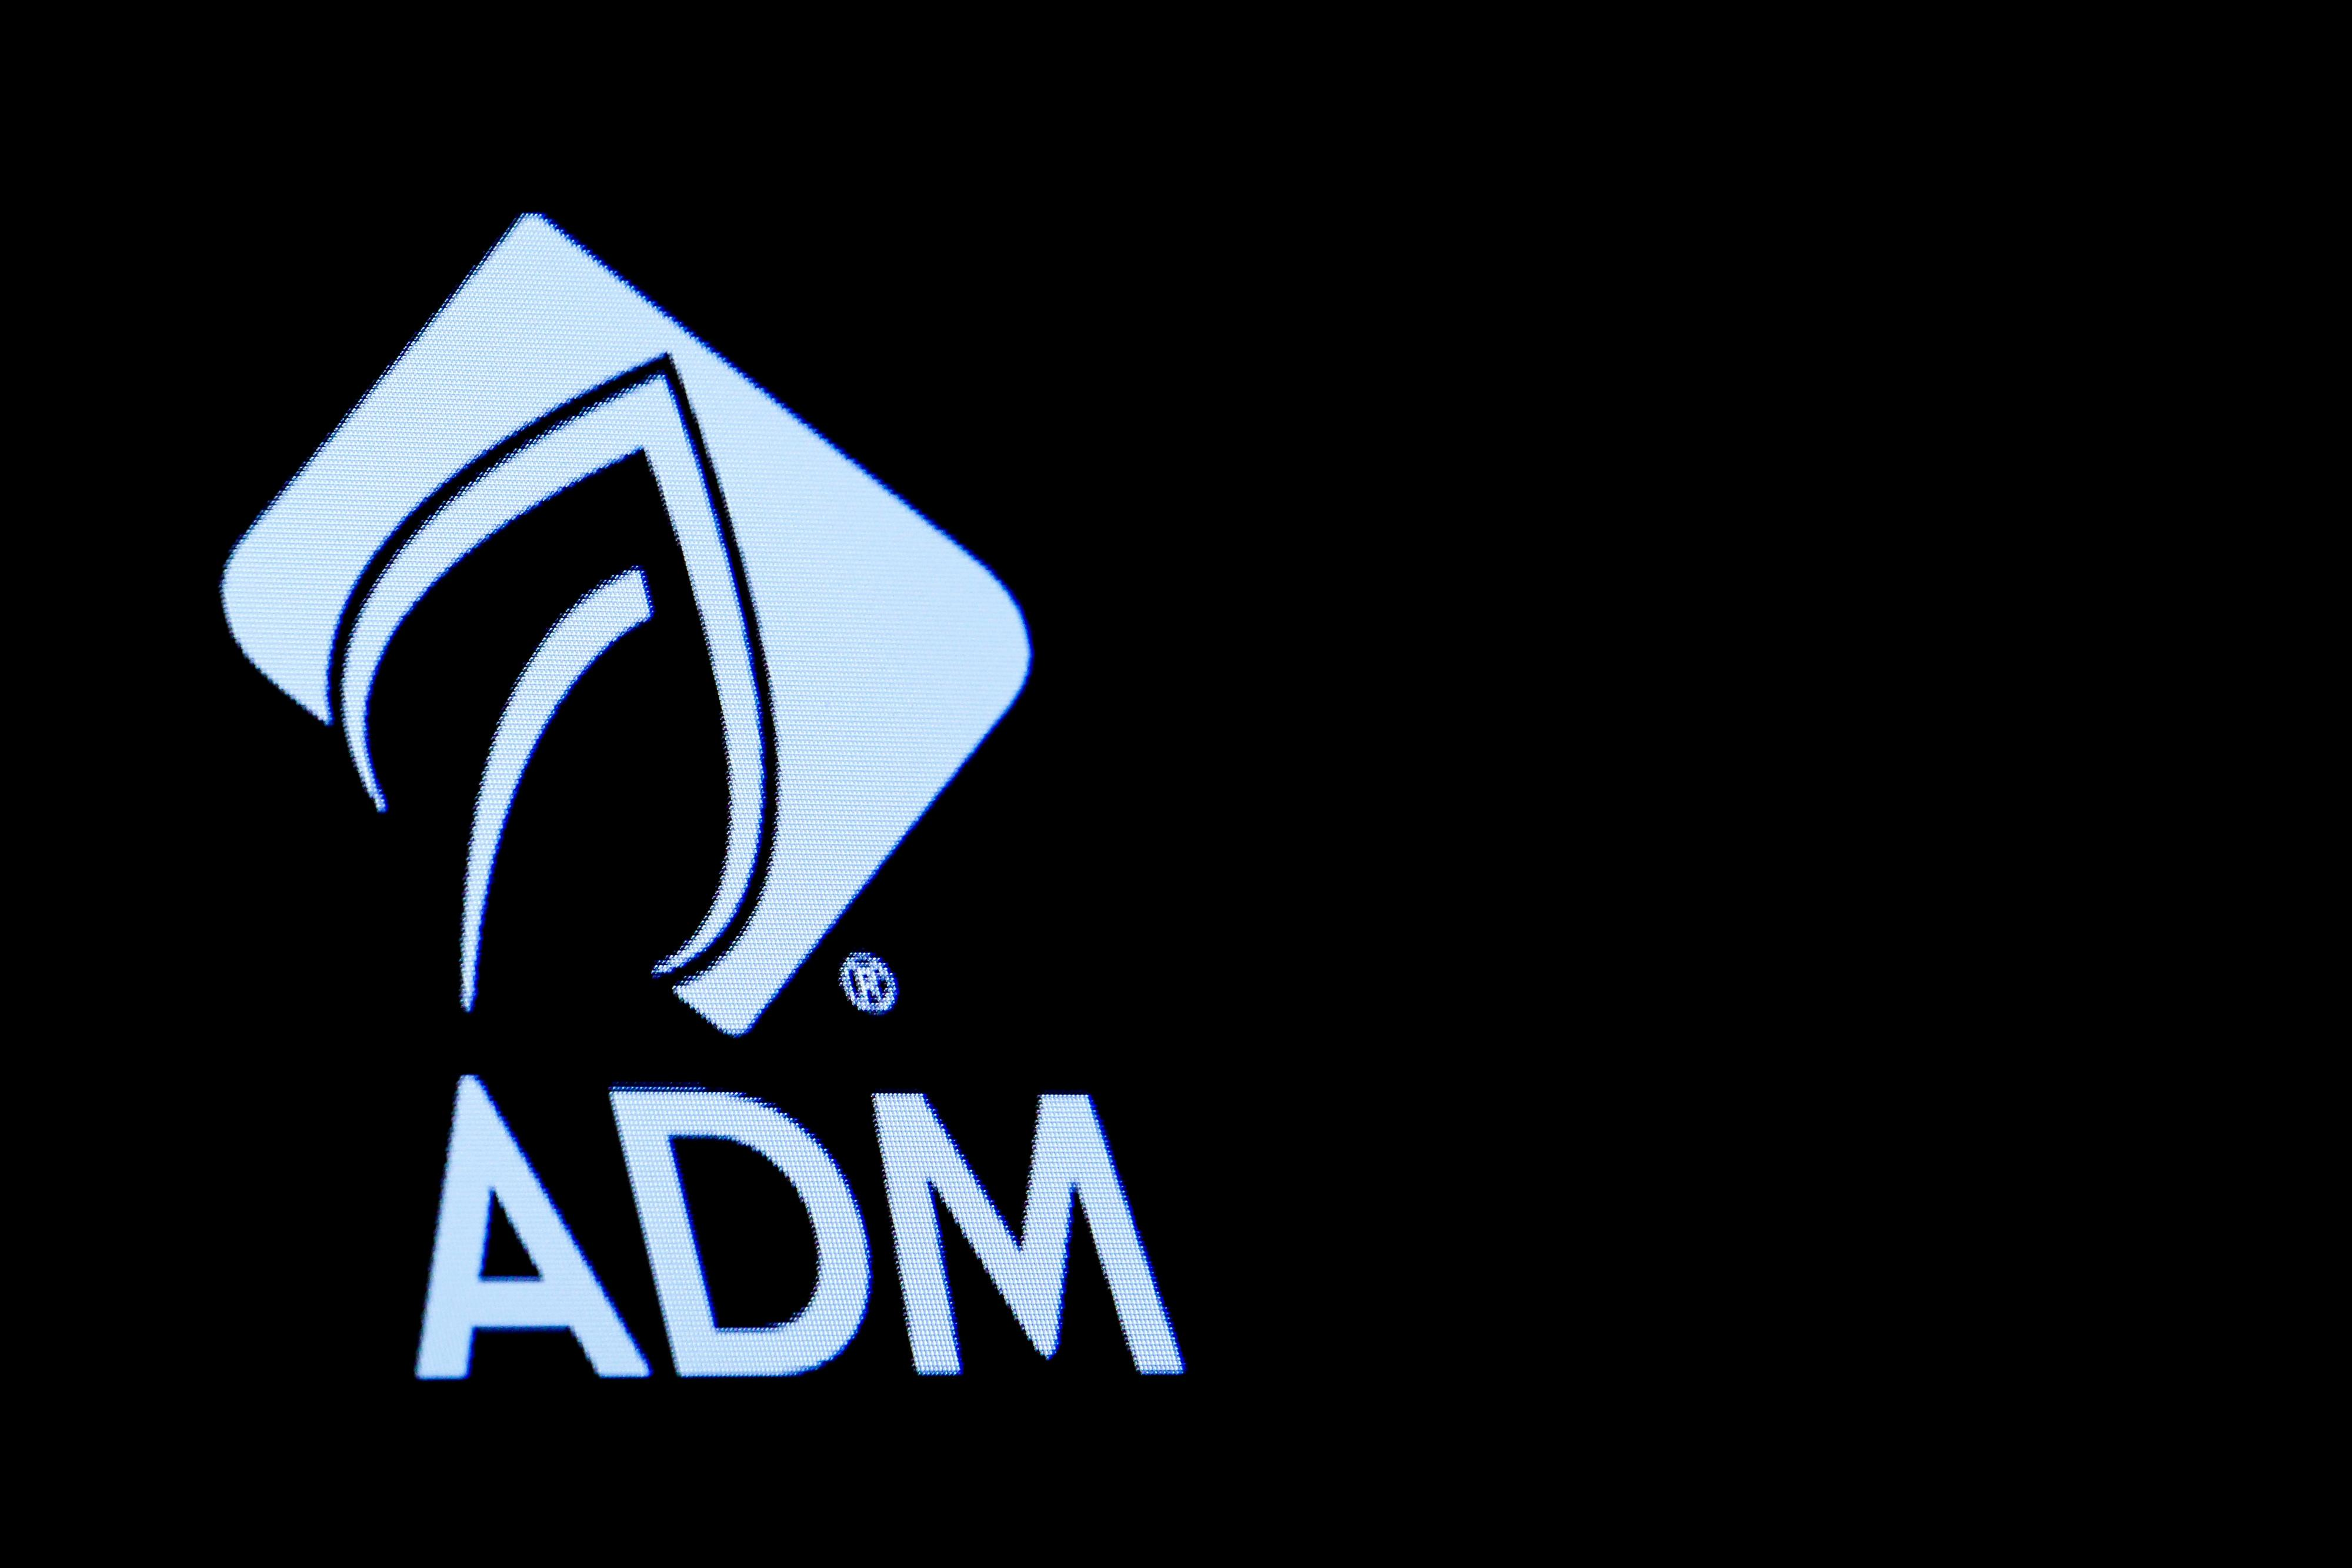 Lawsuit alleges ADM manipulated cash ethanol market to profit from...